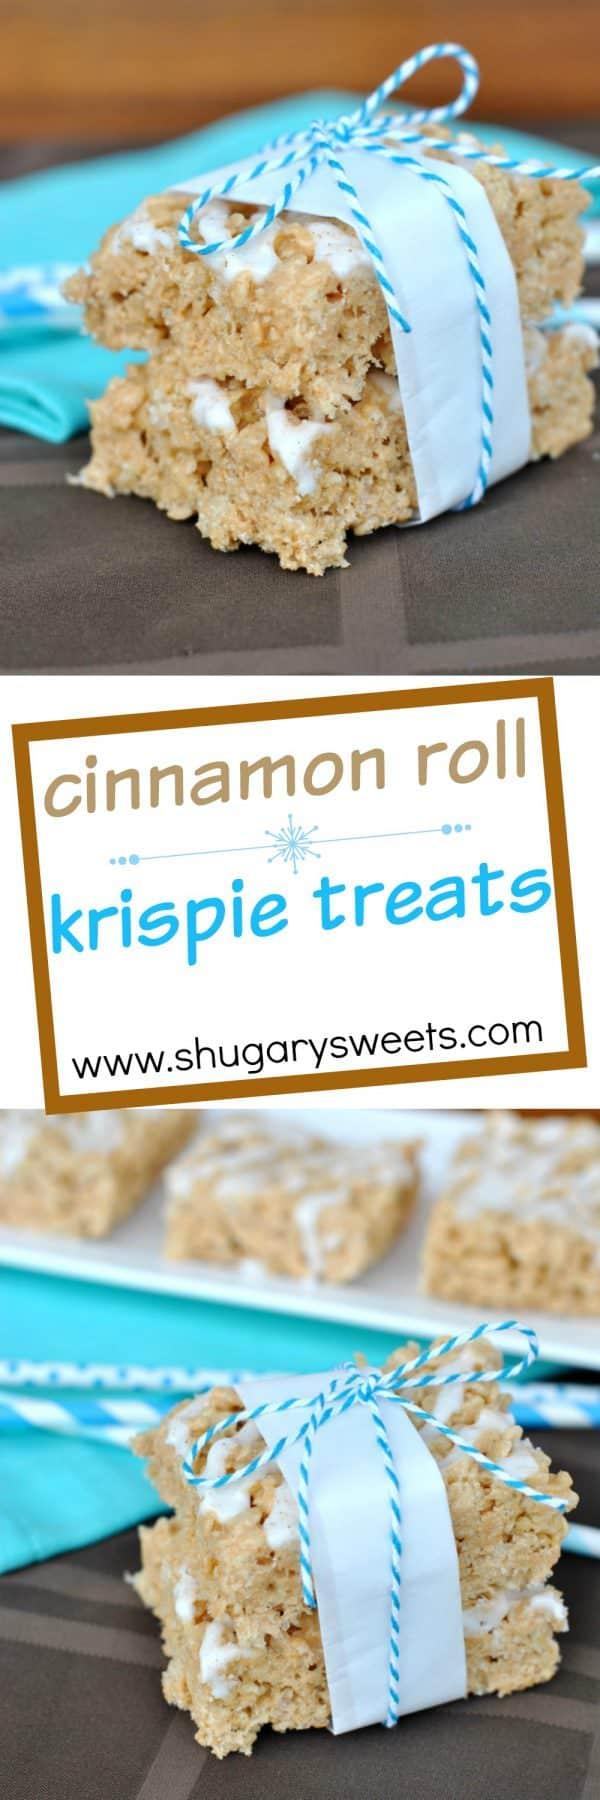 Take your Rice Krispie Treats up a notch by adding Cinnamon Roll flavor! You can't keep your hands off these.